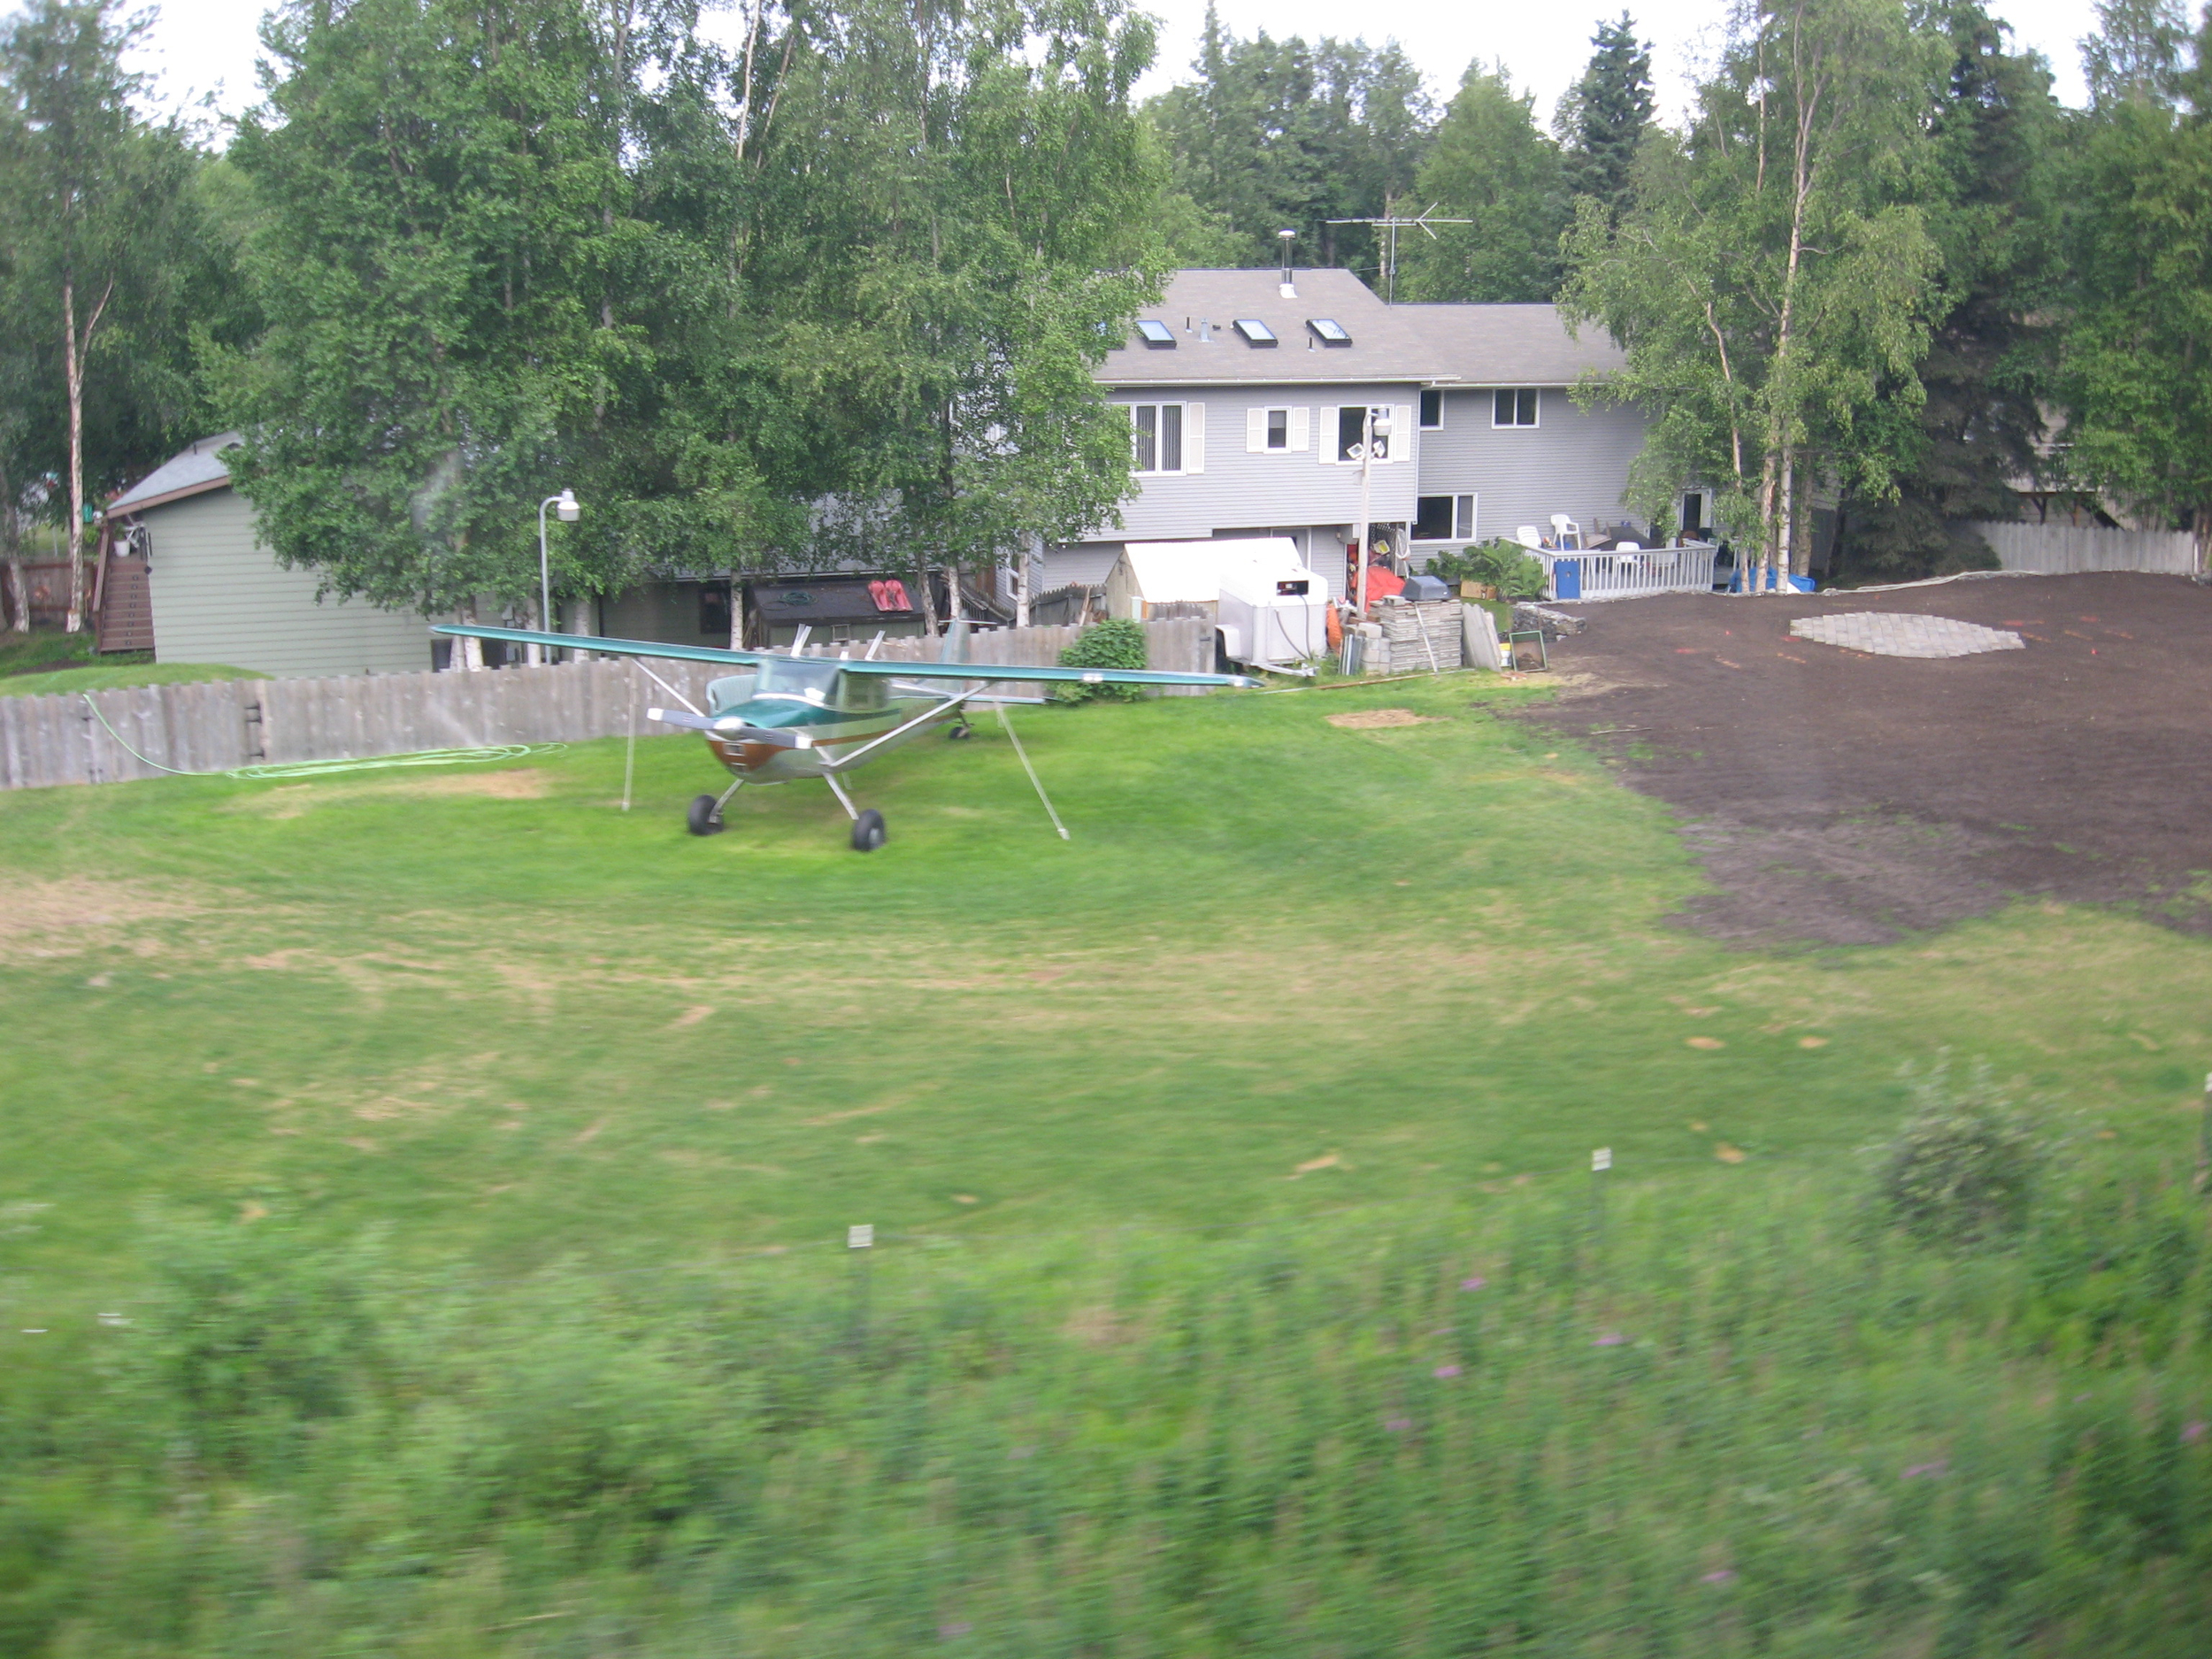 This photo was taken from the train on the way to rafting.  There is a community in the city limits that has a backyard airstrip...talk about fly-in fly-out!